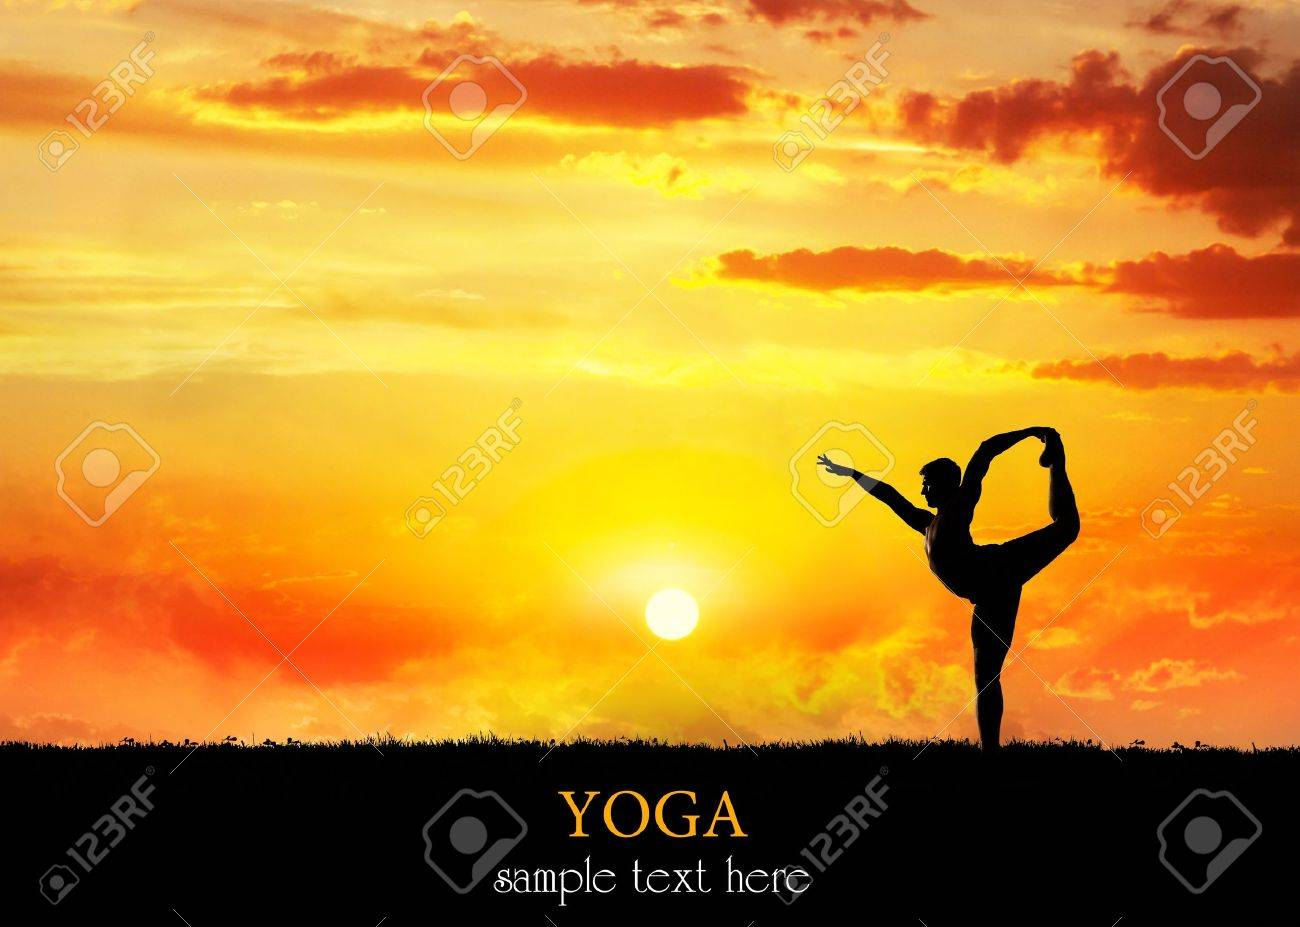 Yoga Natarajasana dancer balancing pose by Man in silhouette with dramatic sunset sky background. Free space for text Stock Photo - 12173985